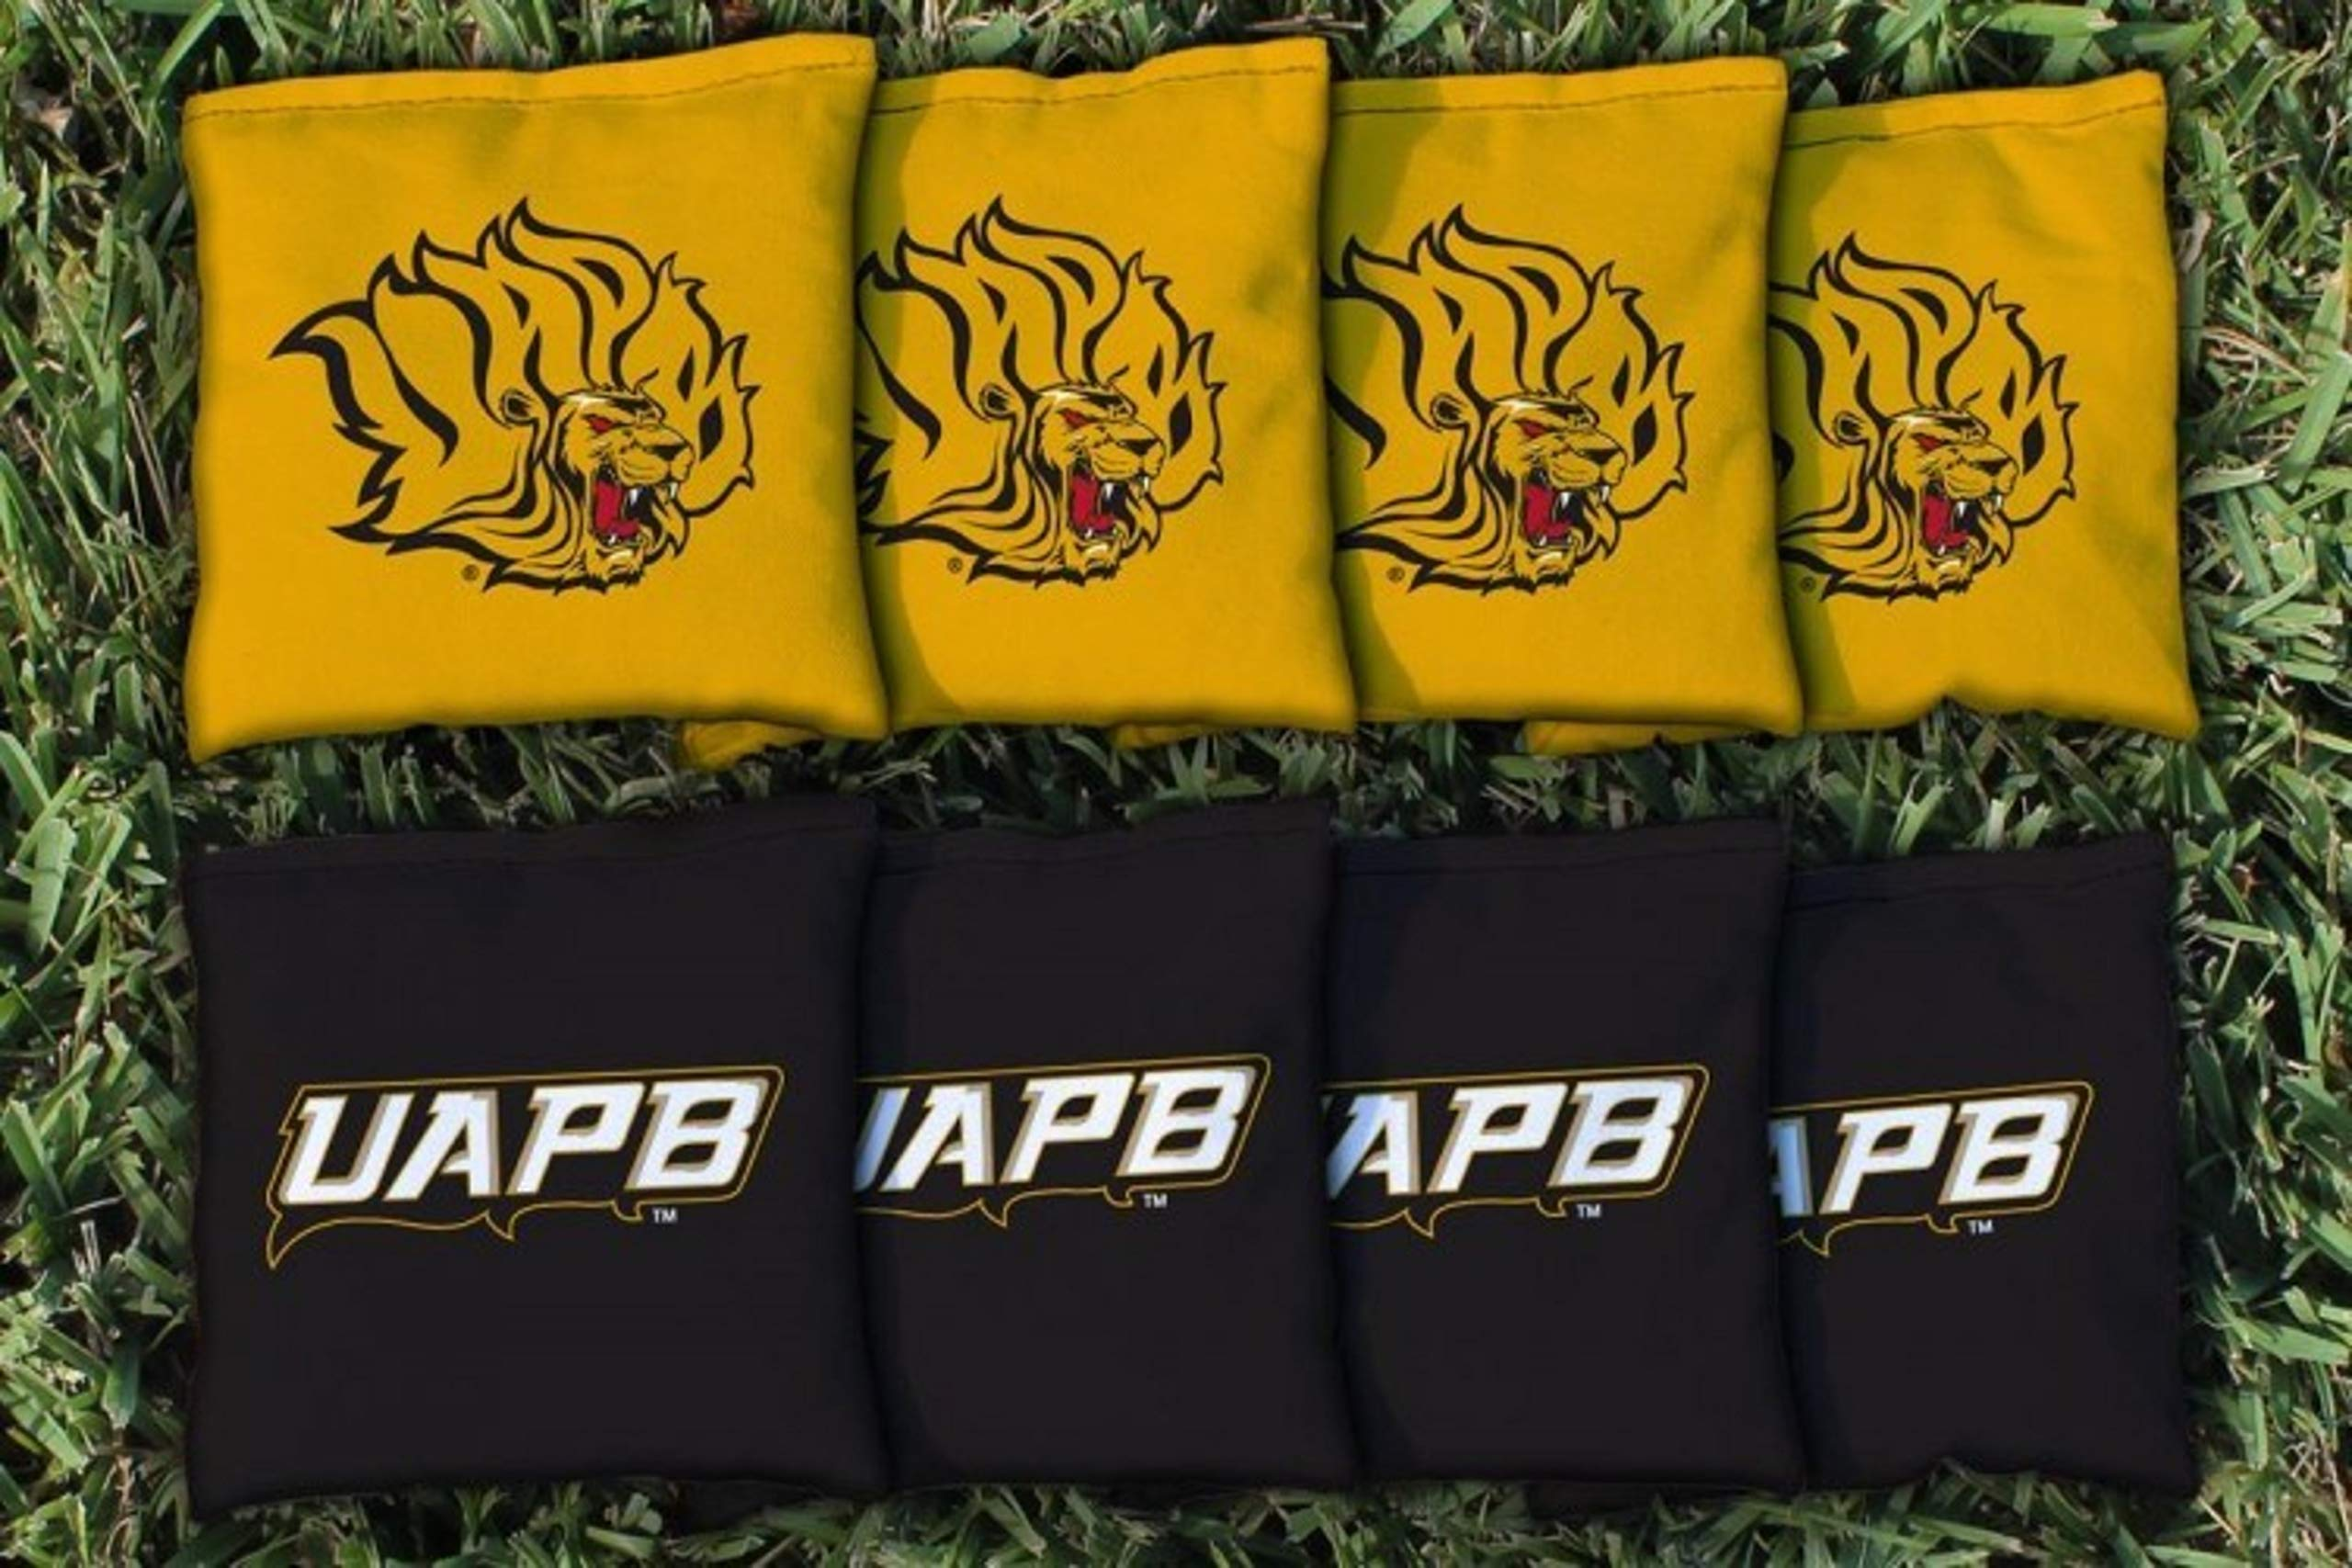 Victory Tailgate NCAA Regulation Cornhole Game Bag Set (8 Bags Included, Corn-Filled) - Arkansas Pine Bluff UAPB Golden Lions